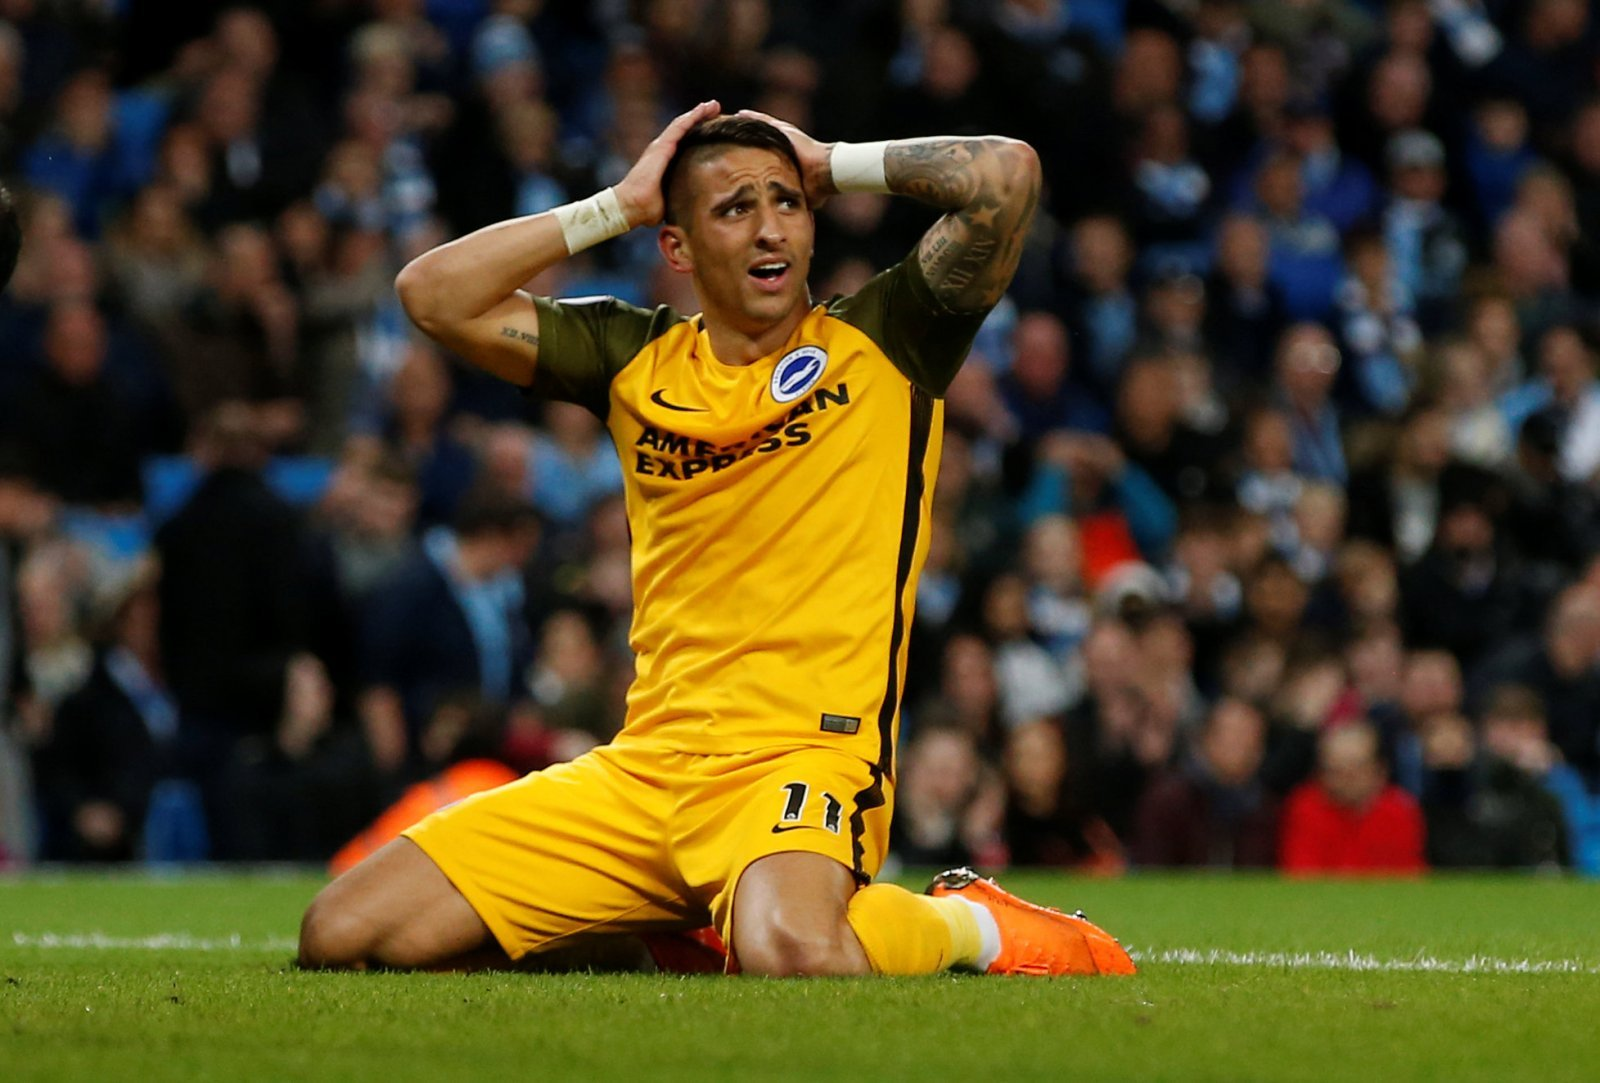 Domino effect: Brighton target could open the door for West Brom to move on Knockaert